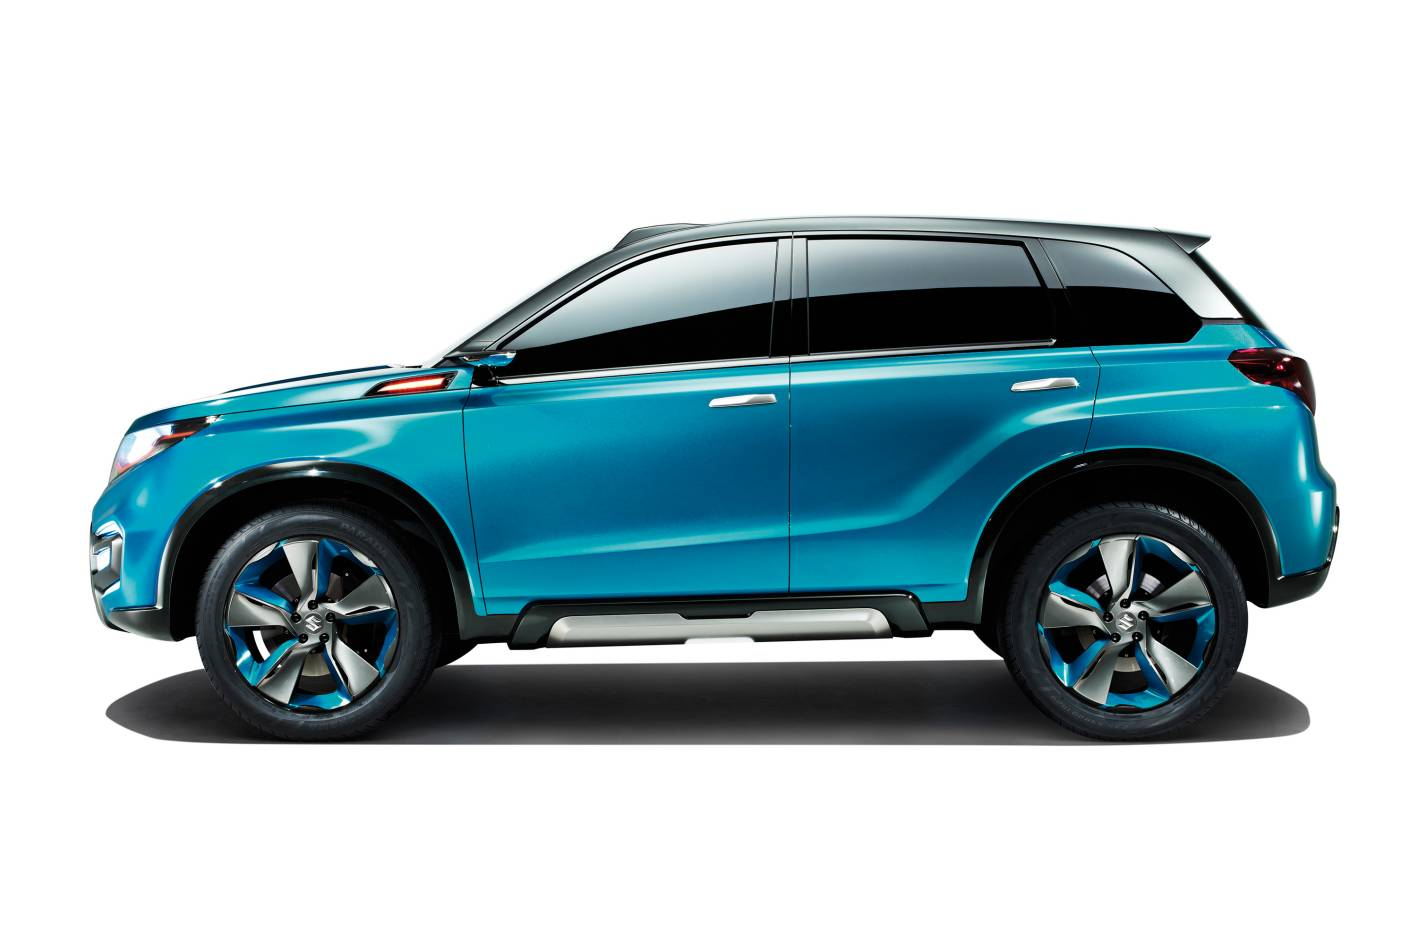 suzuki cars news iv 4 compact suv hints at new vitara. Black Bedroom Furniture Sets. Home Design Ideas